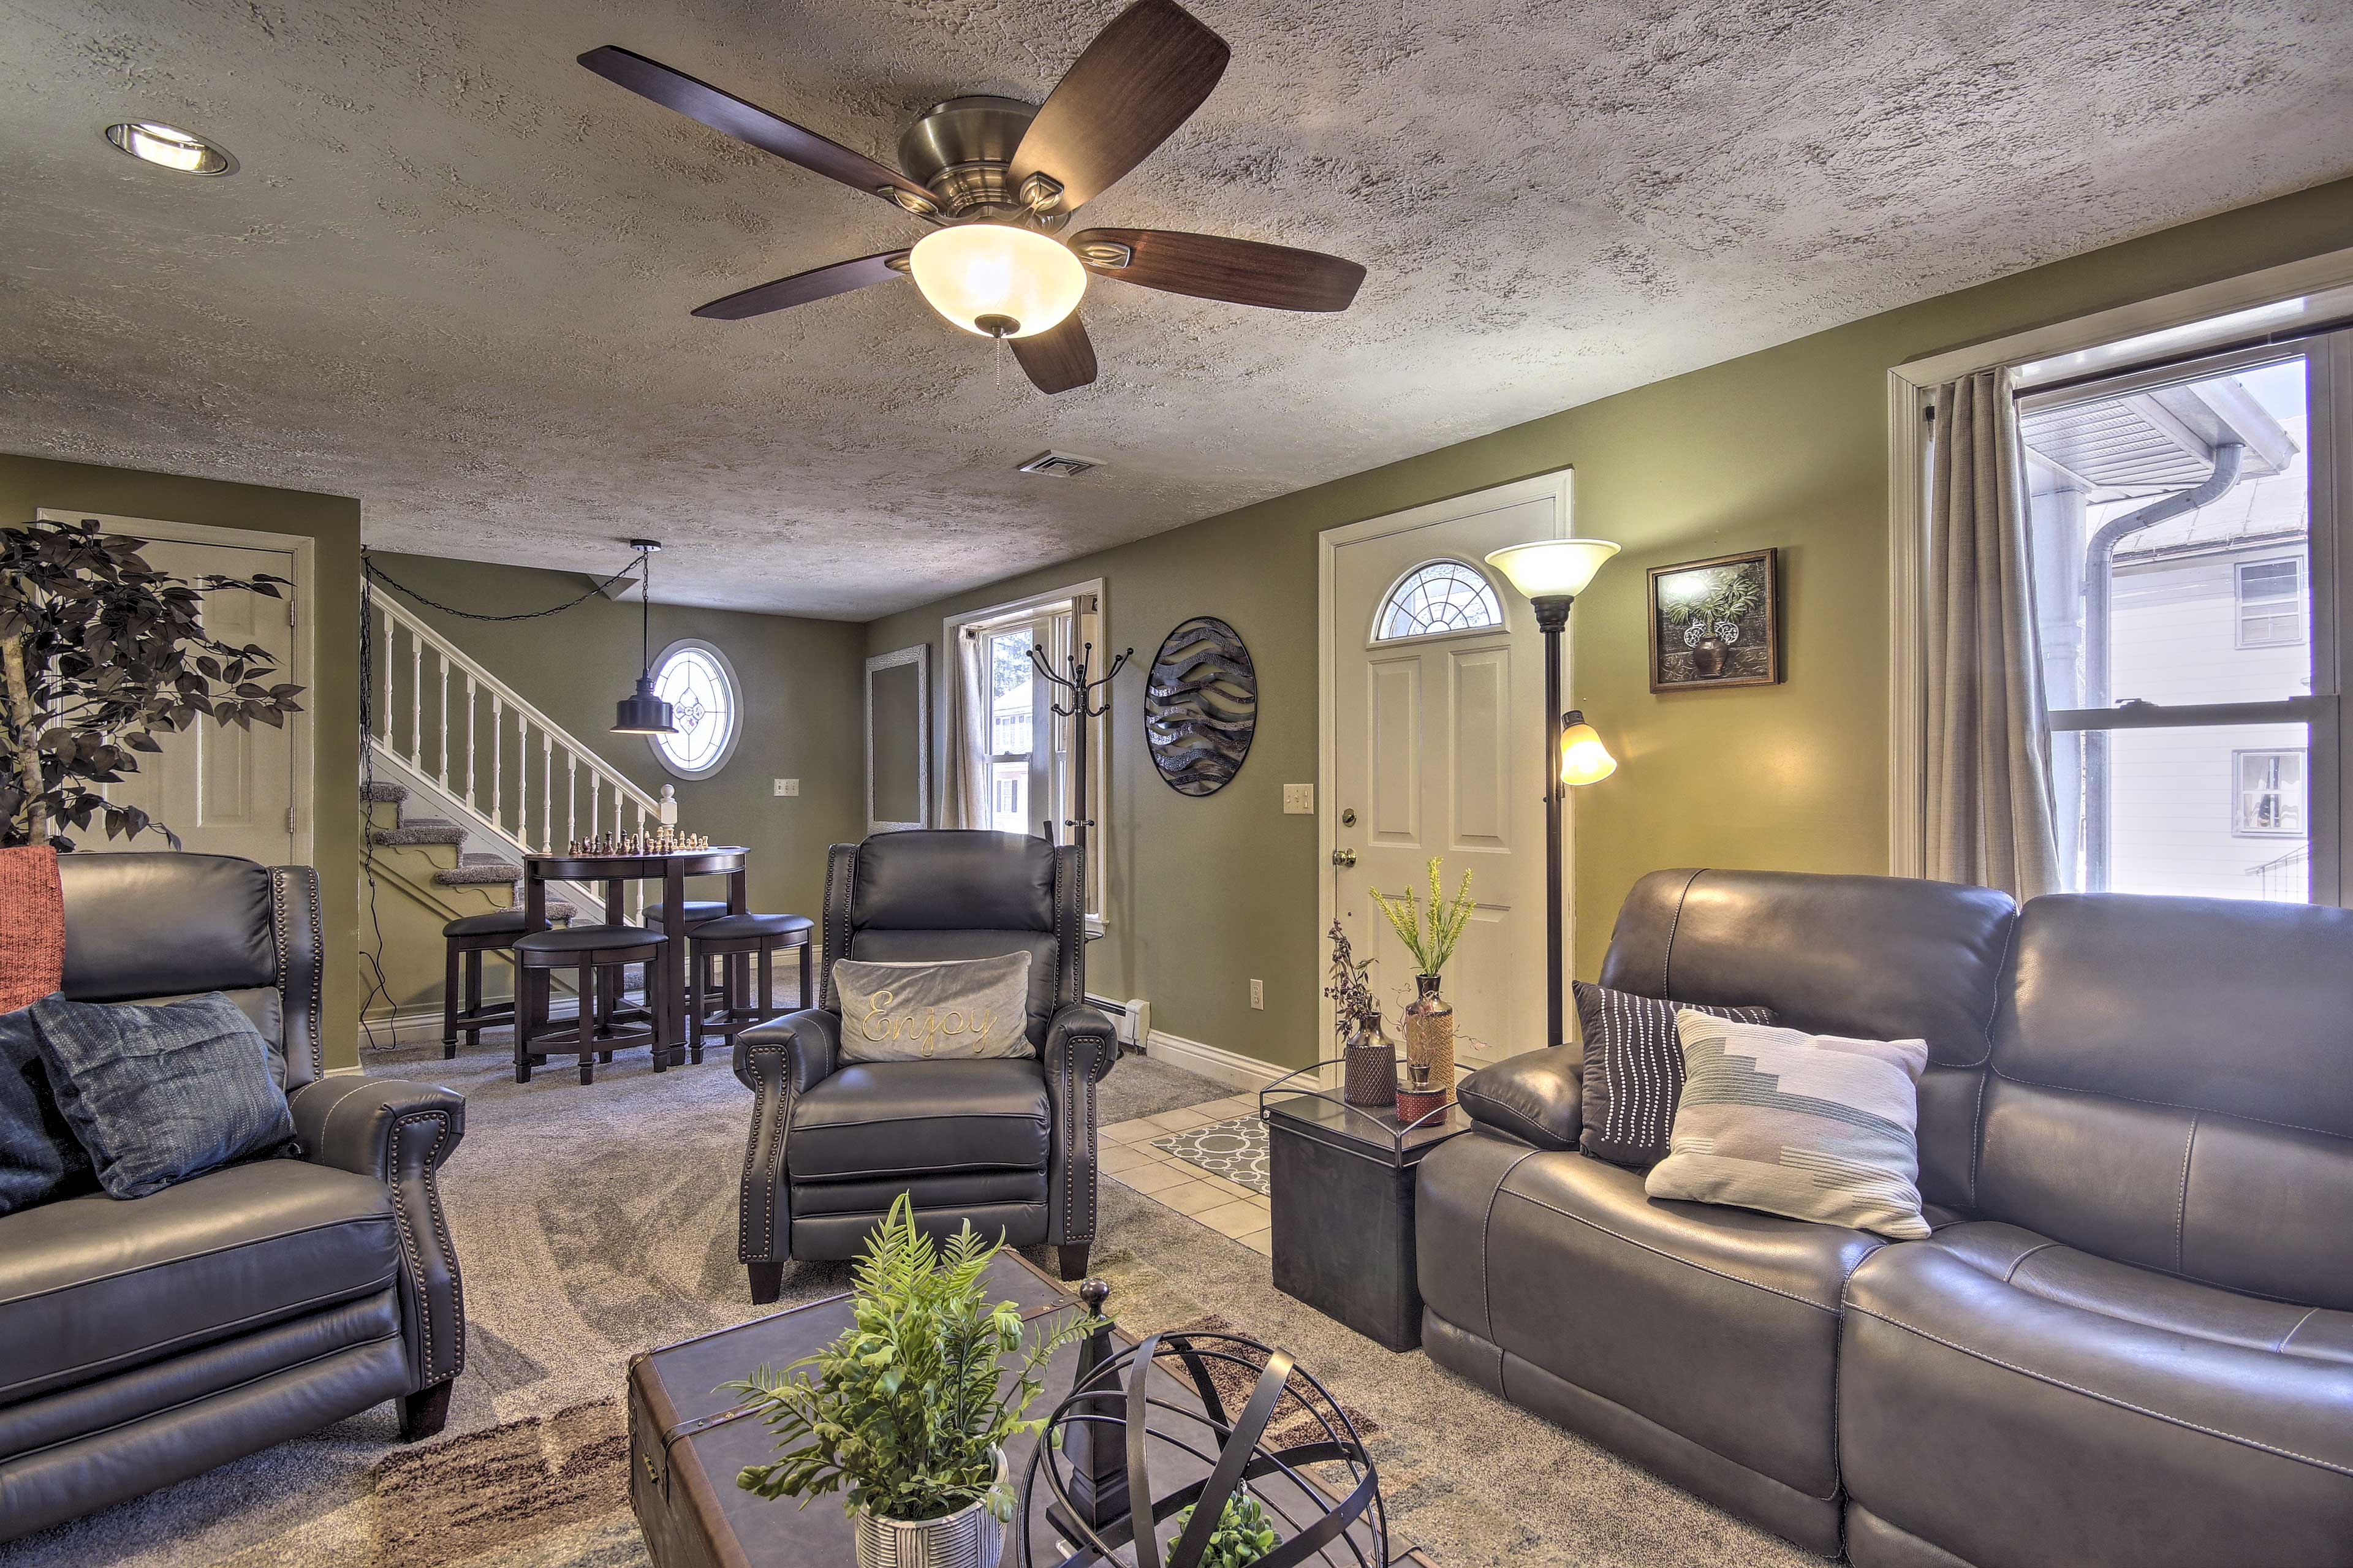 Kick back on leather furnishings as family favorites play on the flat-screen TV.